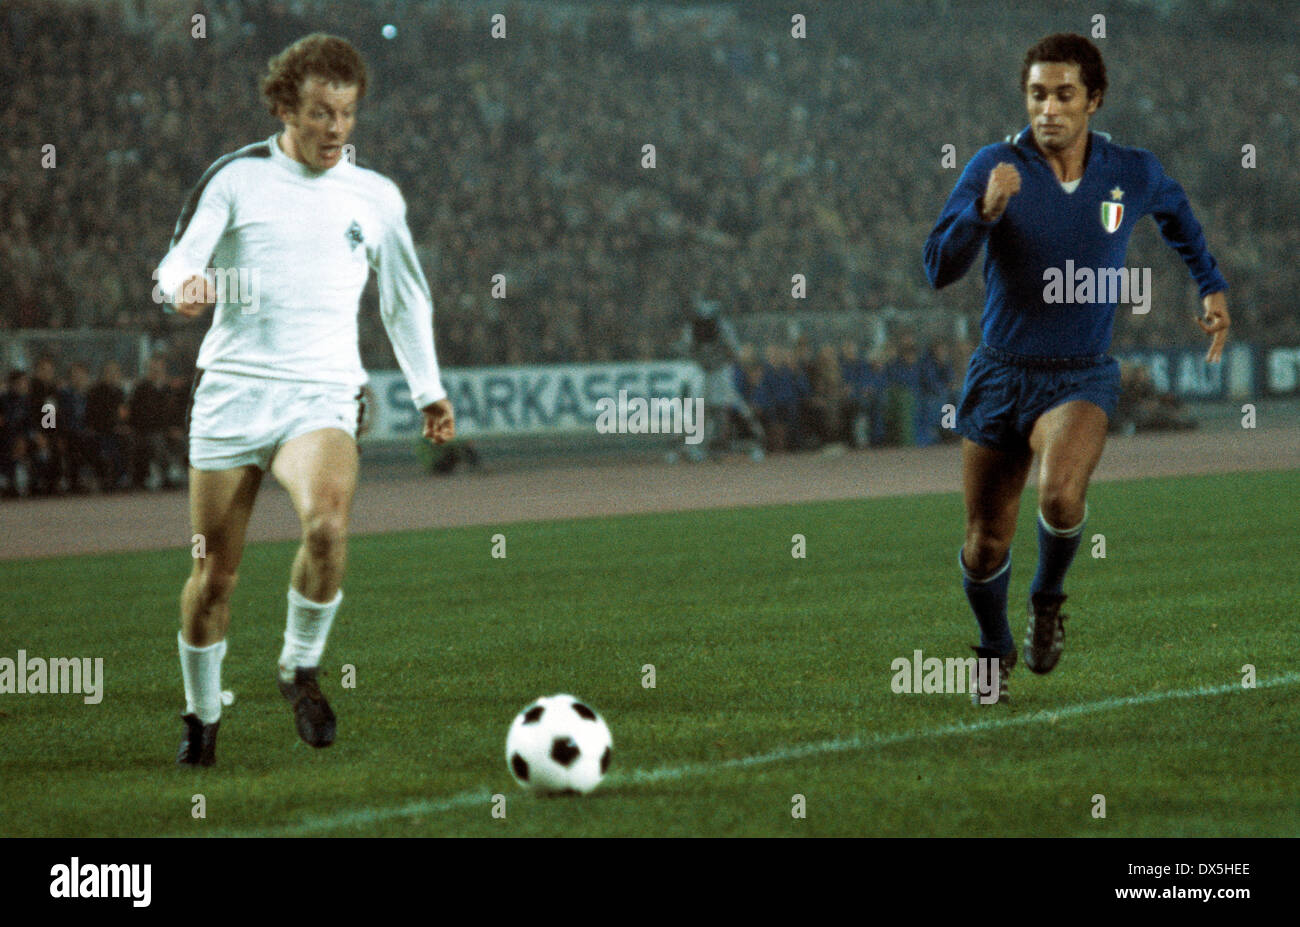 football, European Champion Clubs Cup, Champions League, 1975/1976, last sixteen, first leg, Rhine Stadium Duesseldorf, Borussia Moenchengladbach versus Juventus Turin 2:0, scene of the match, Herbert Wimmer (MG) left and Claudio Gentile (Juve) - Stock Image